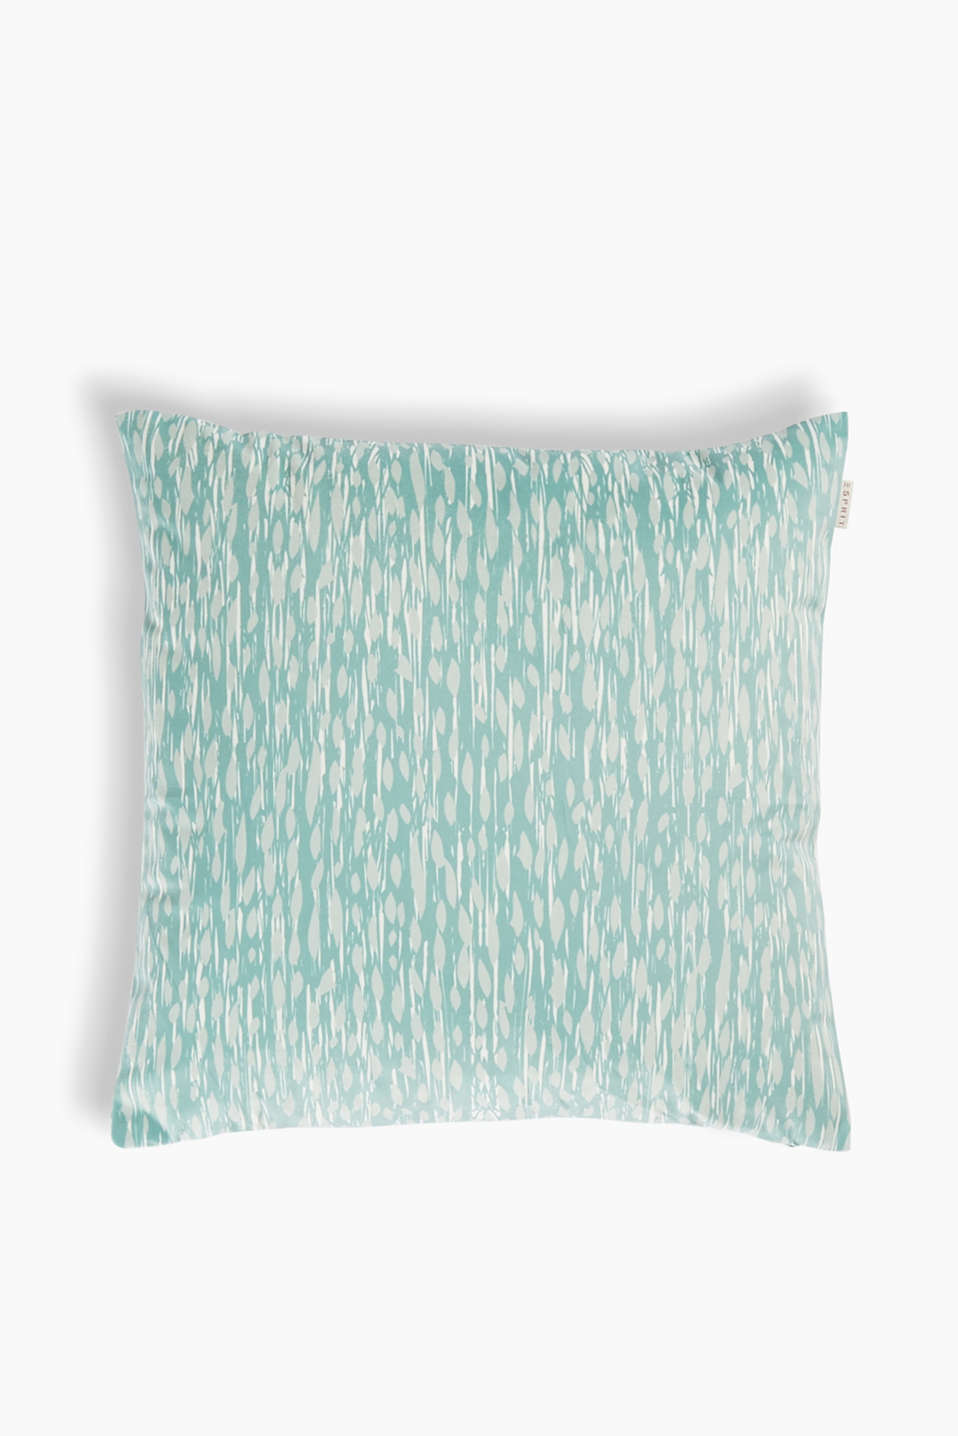 Esprit - Lago soft velvet cushion cover